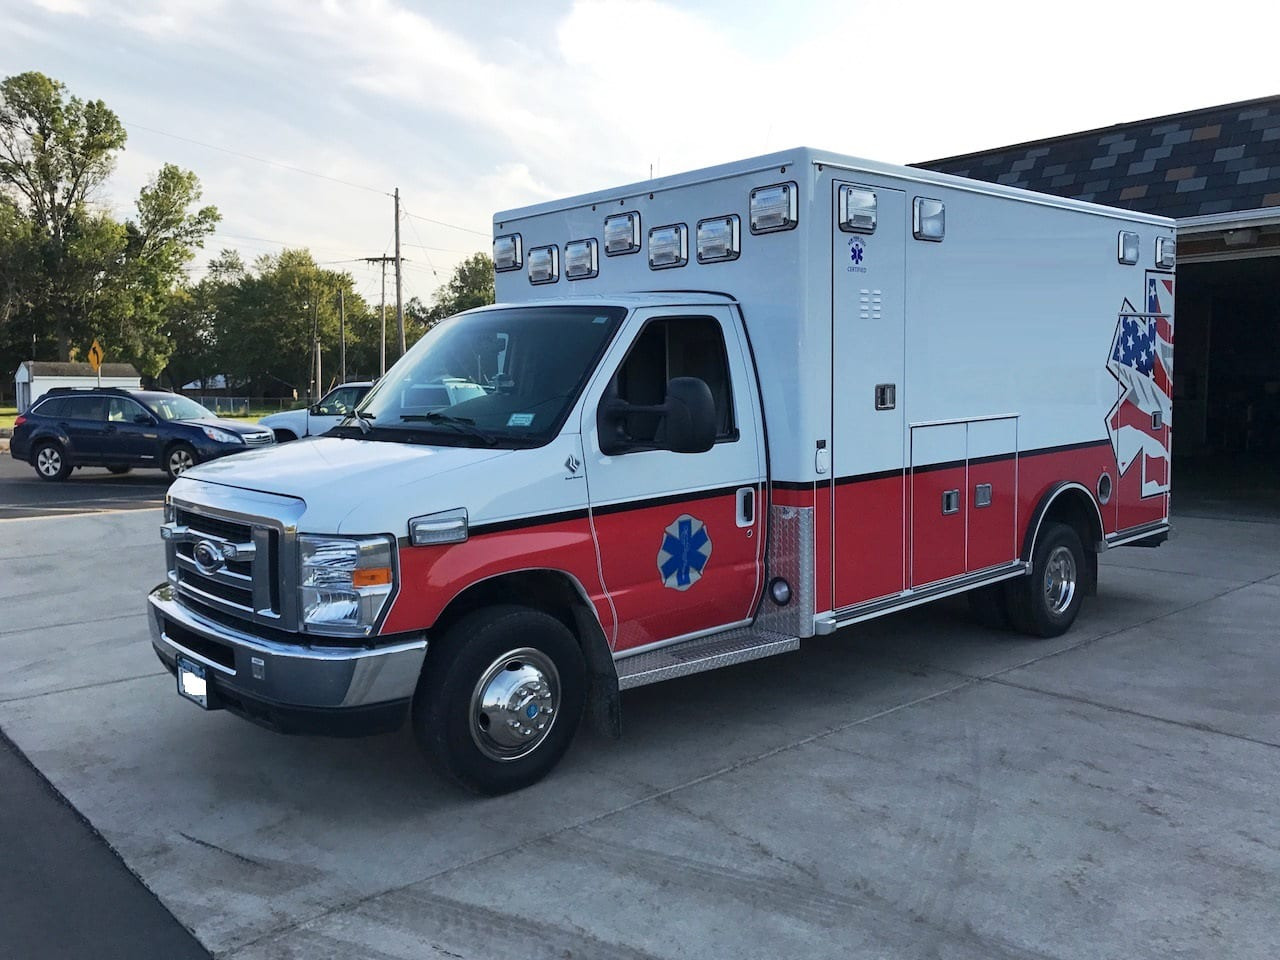 Used 2015 Ford E-450 Like New Road Rescue Ambulance for Sale